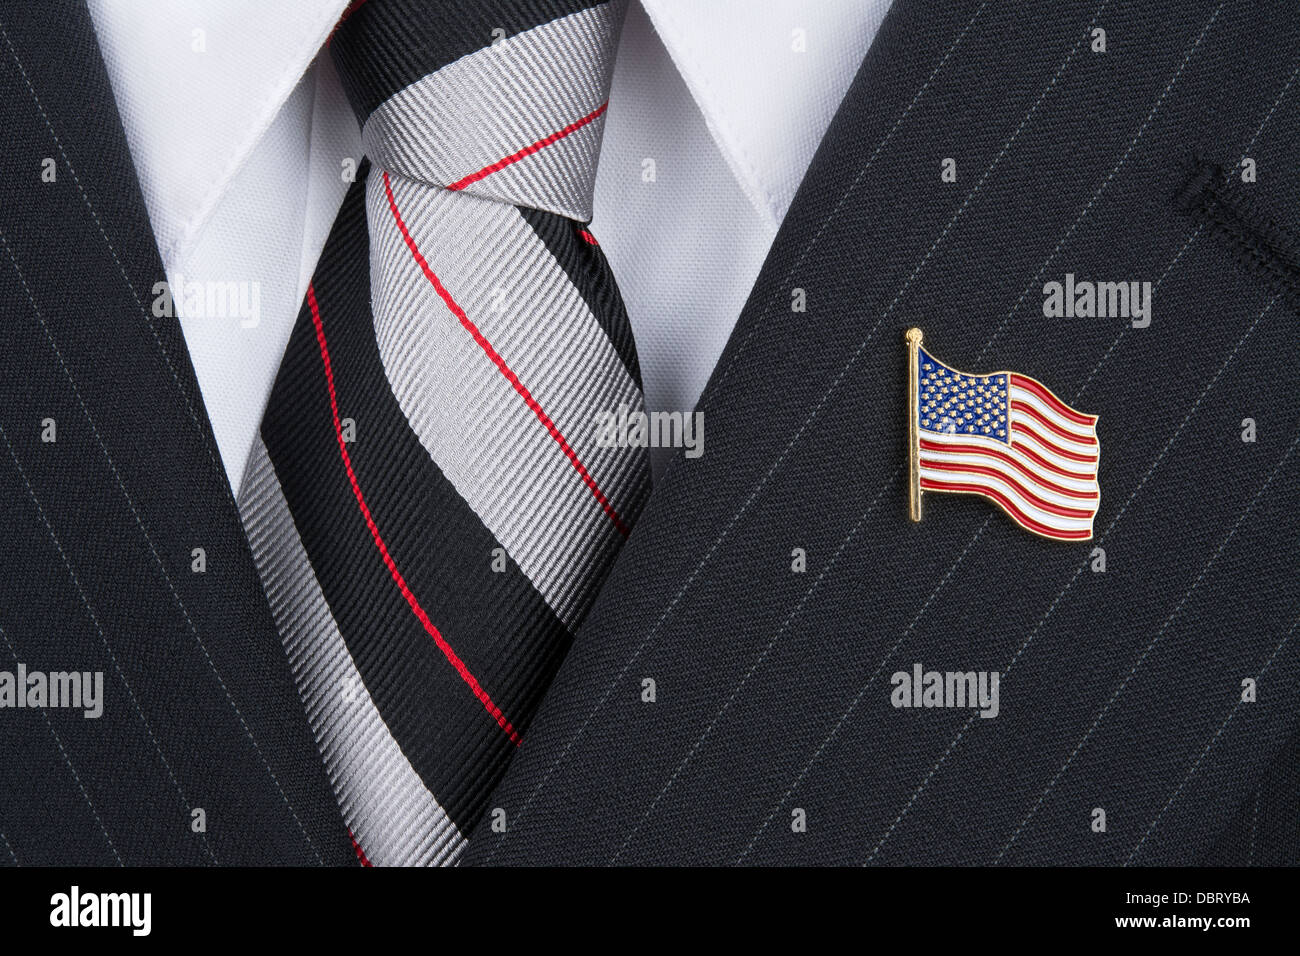 c920d0d6e A politician wearing an American flag lapel pin symbolizes patriotism. -  Stock Image